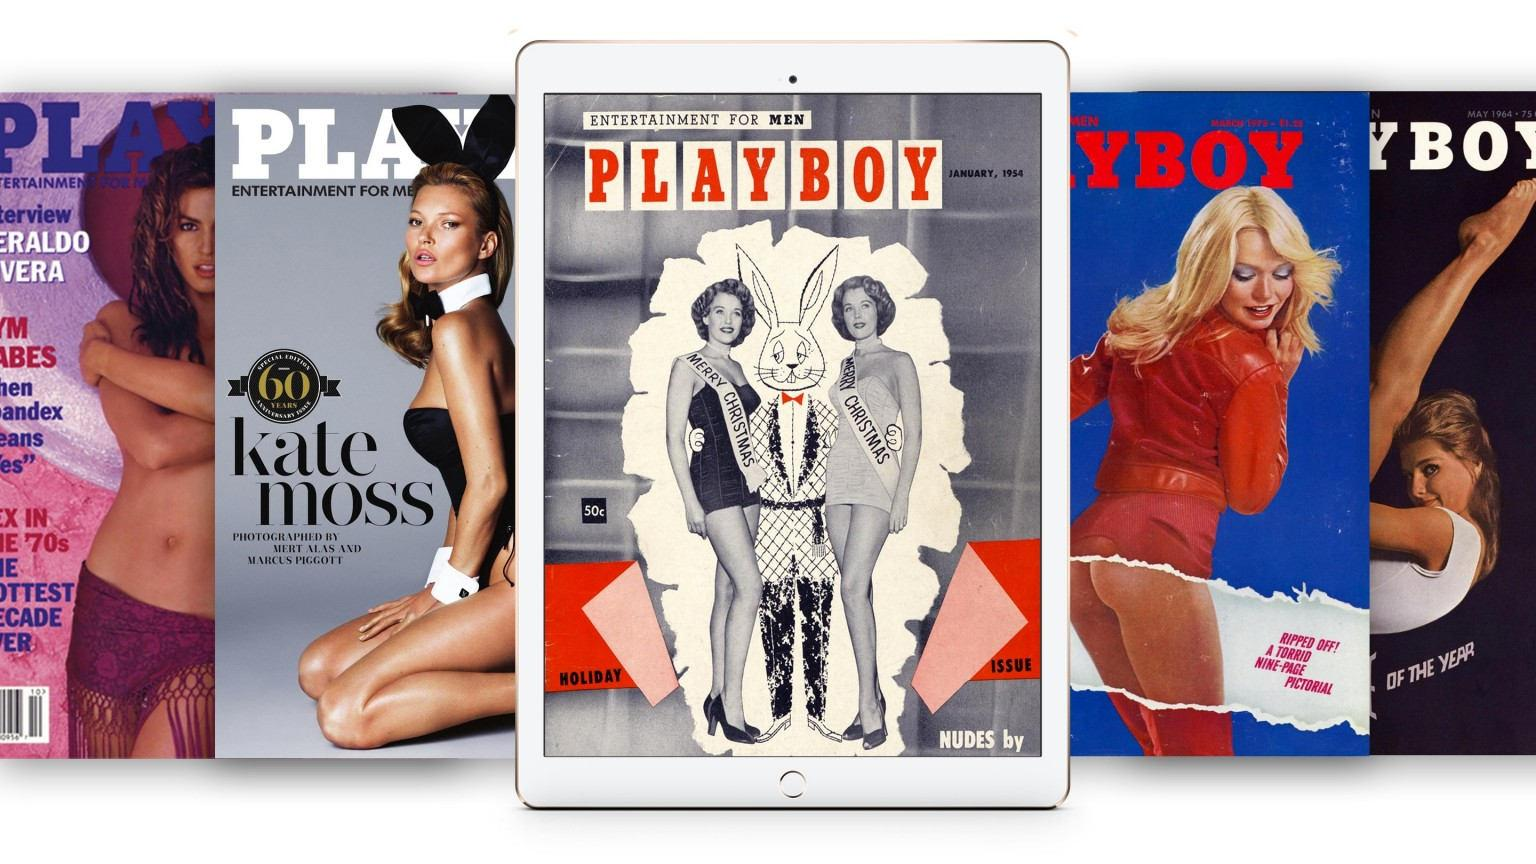 Download Now: The Playboy Classic App Offers Exclusive Content, Bunnies and More